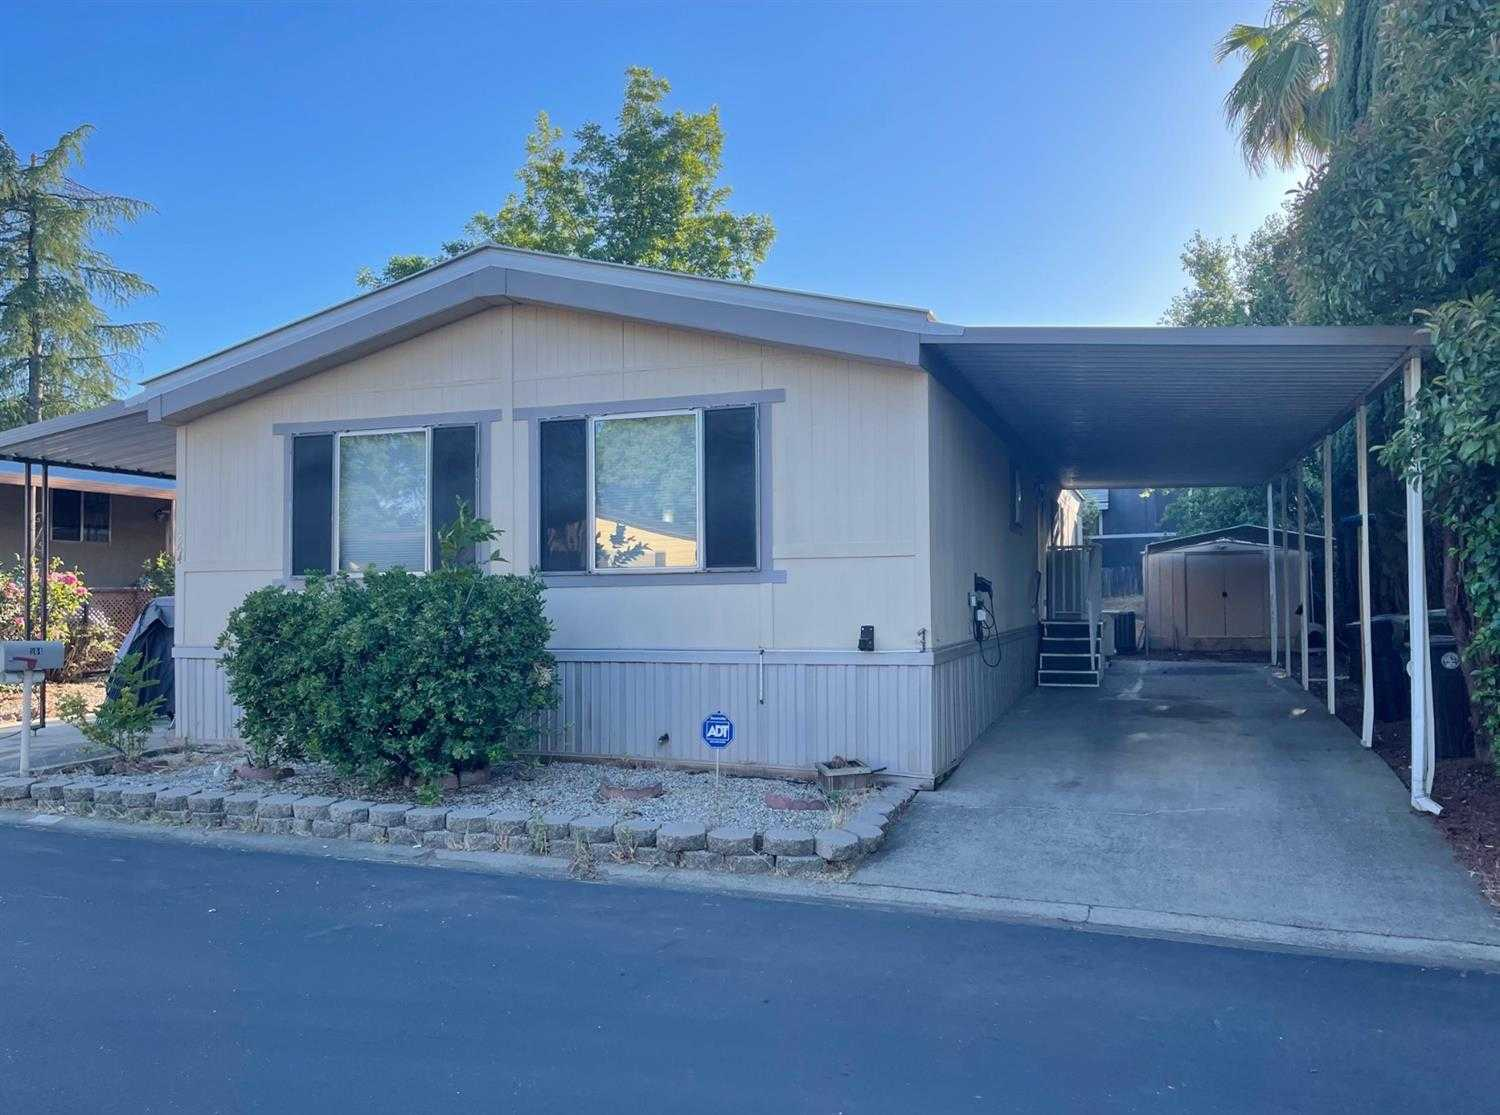 $69,800 - 2Br/2Ba -  for Sale in Citrus Heights